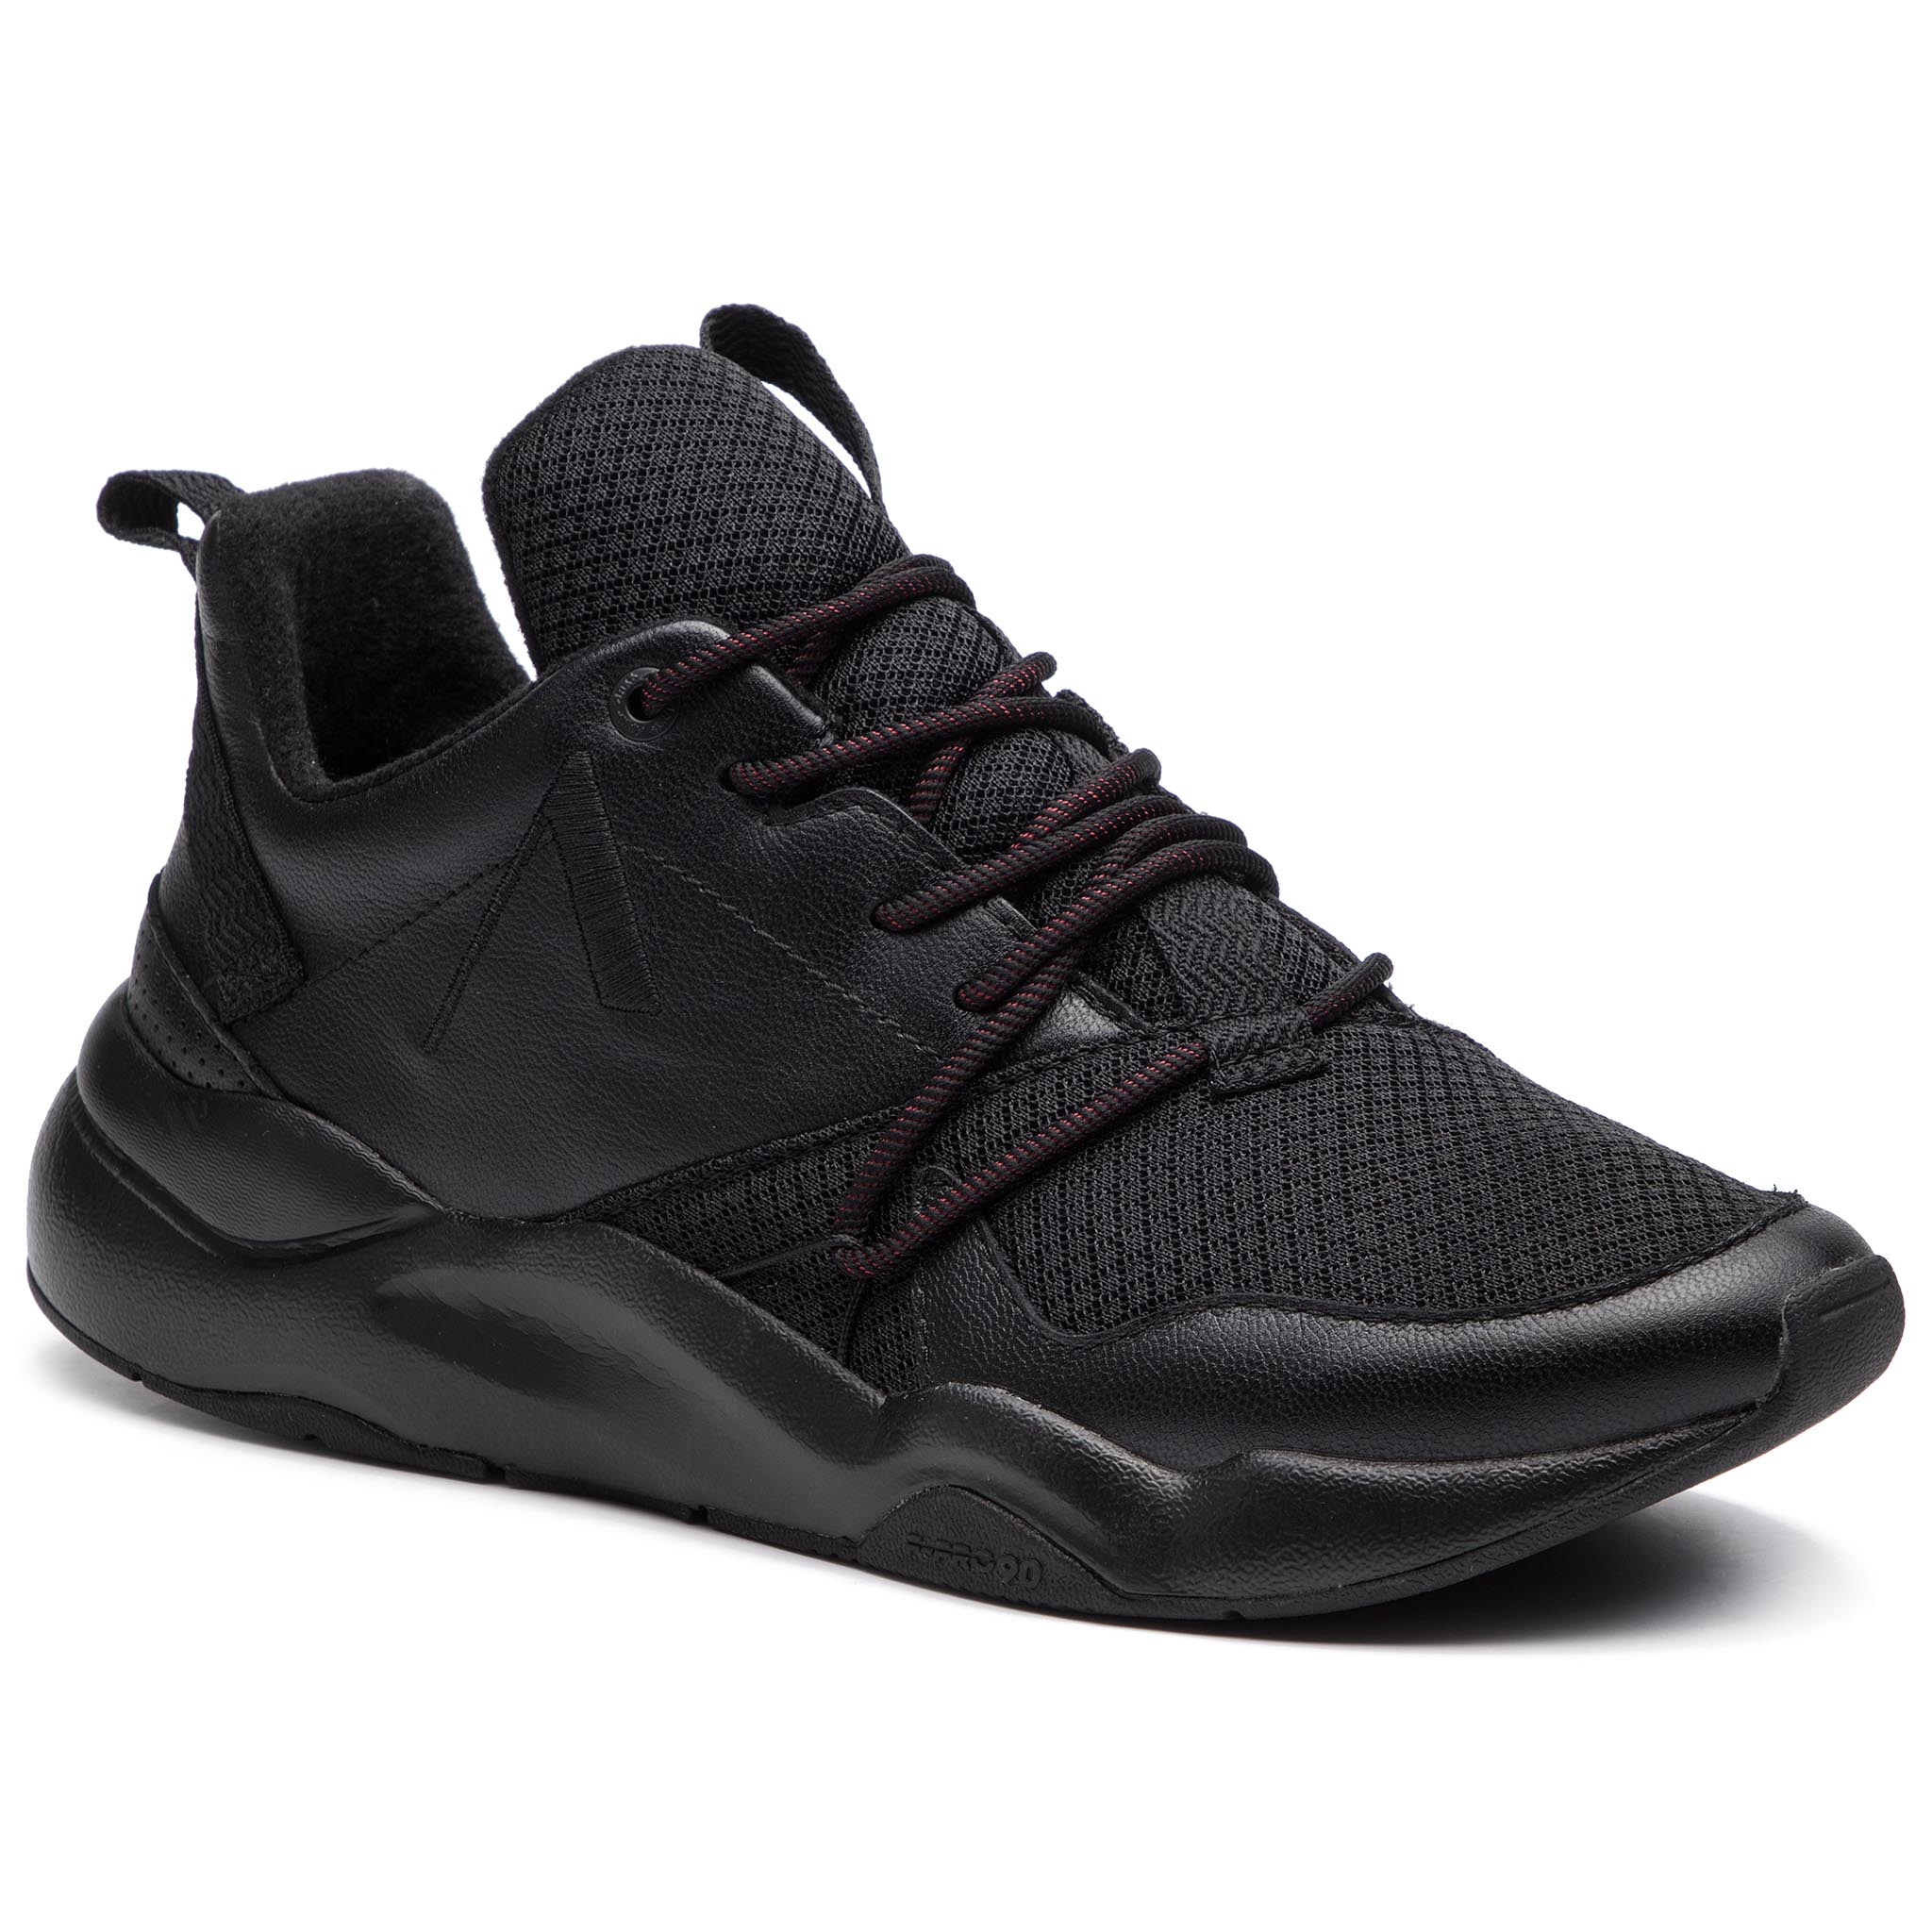 Image of Sneakers ARKK COPENHAGEN - Asymtrix Mesh F-Pro90 ML3002-0099-M Triple Black-Men